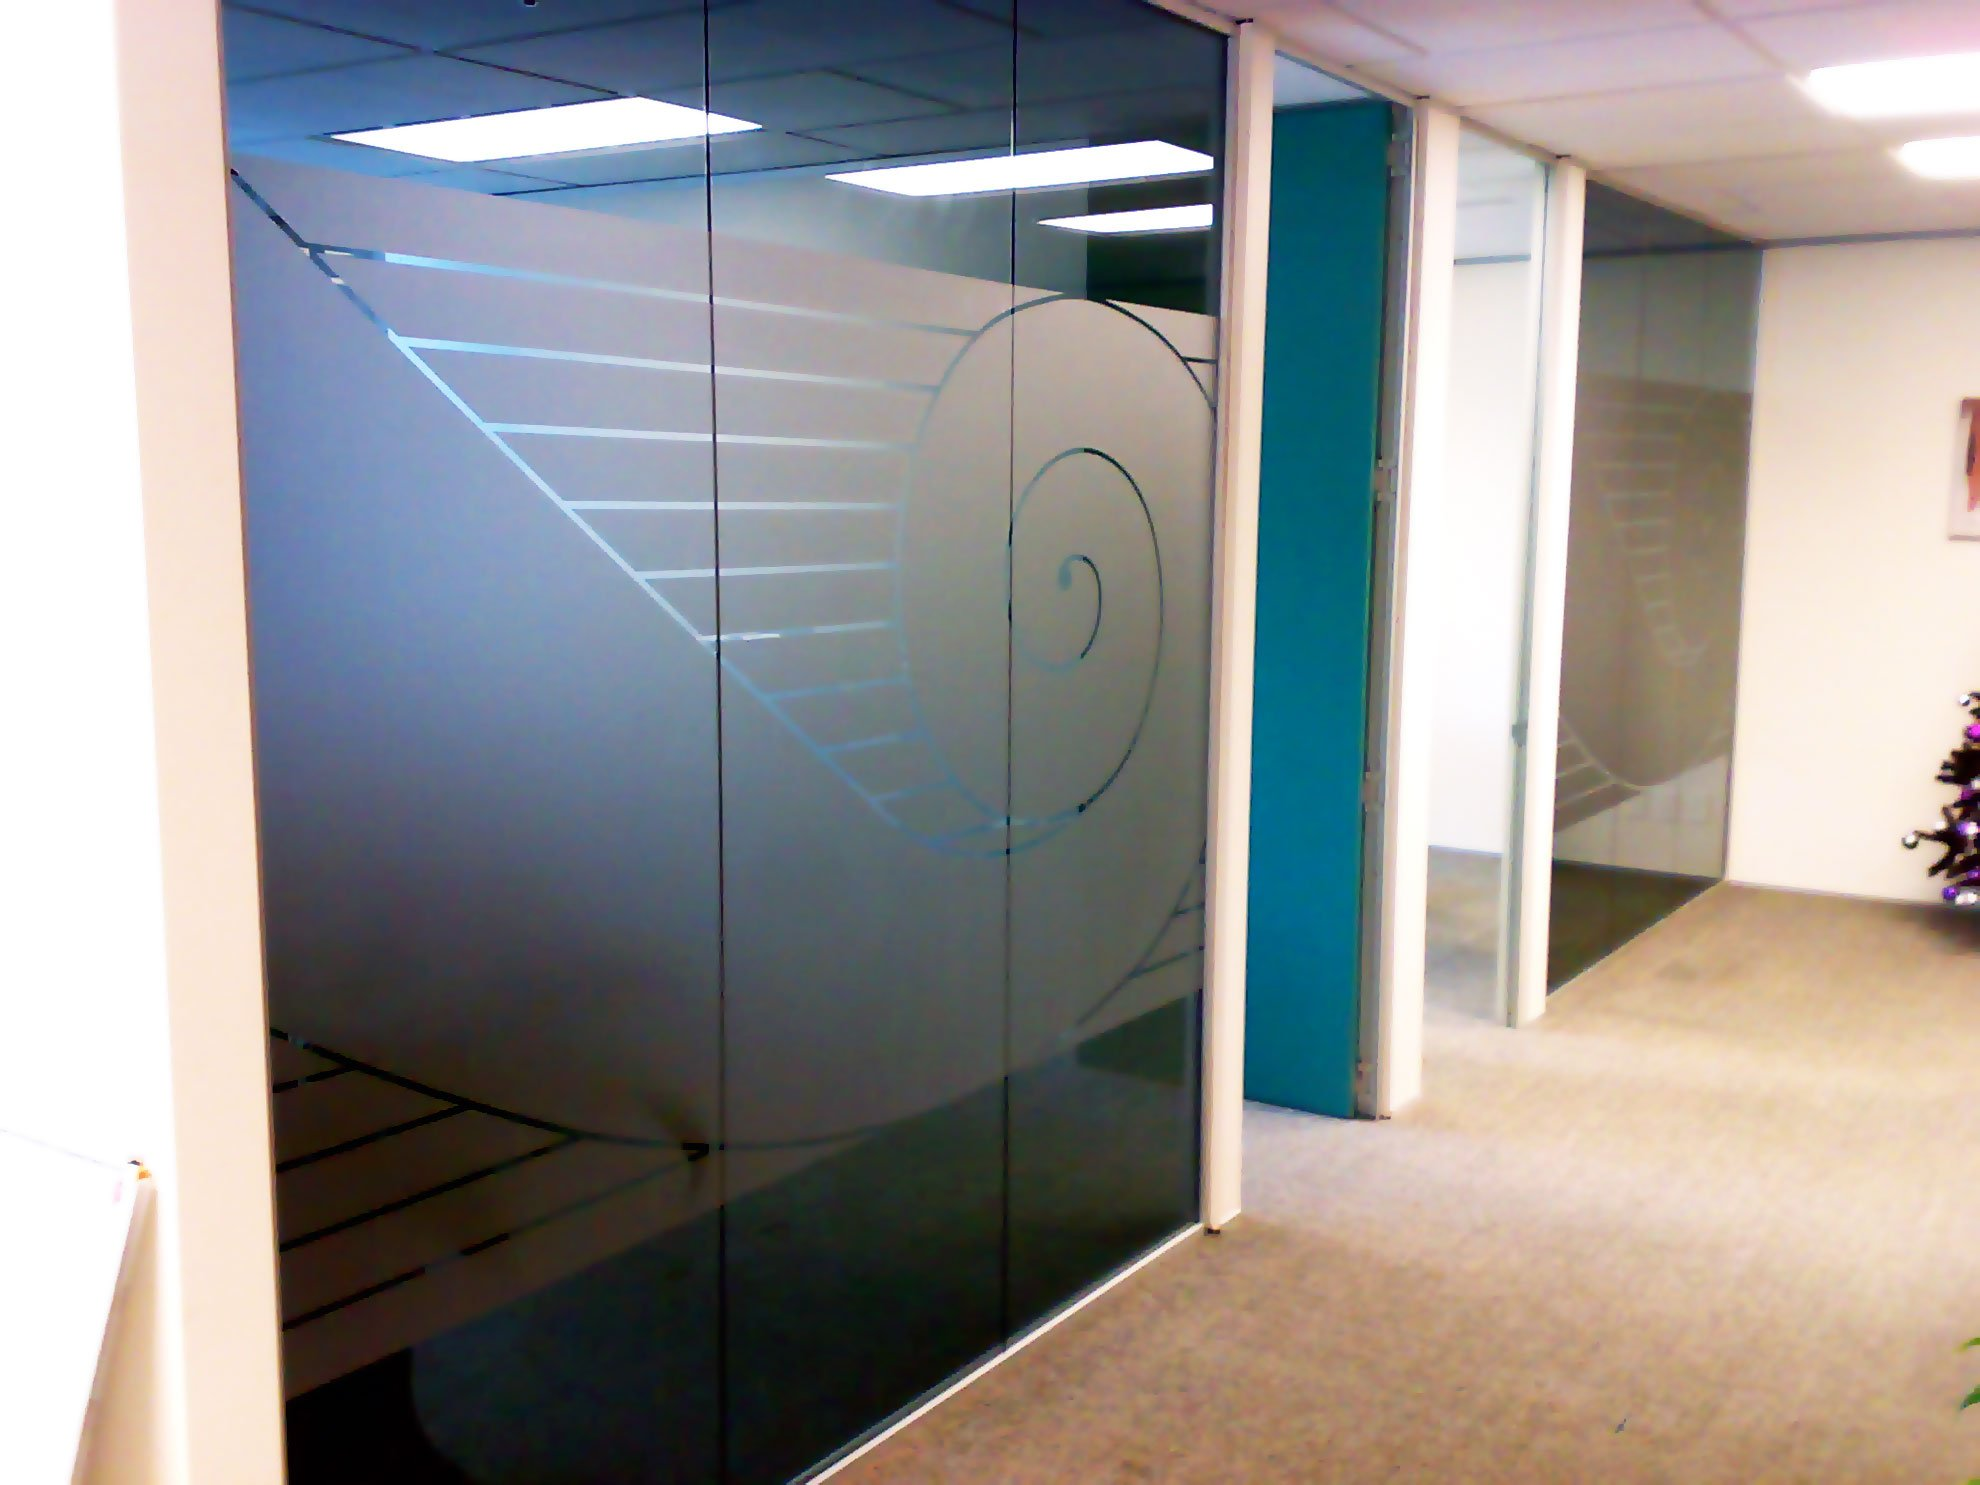 Window etch film with graphic design applied to office windows